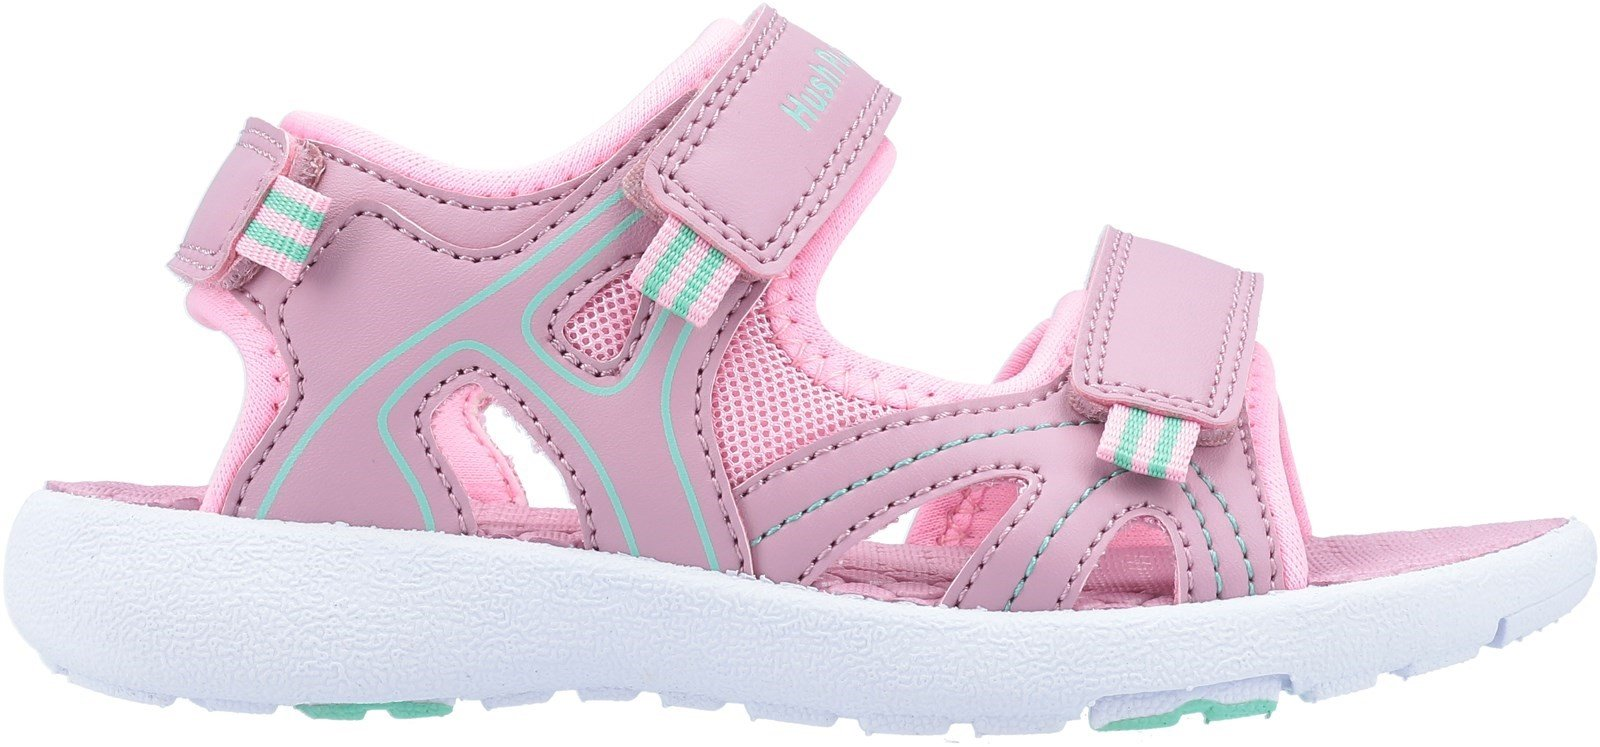 Hush Puppies Women's Lilly Quarter Strap Sandal Various Colours 32652 - Pink 10